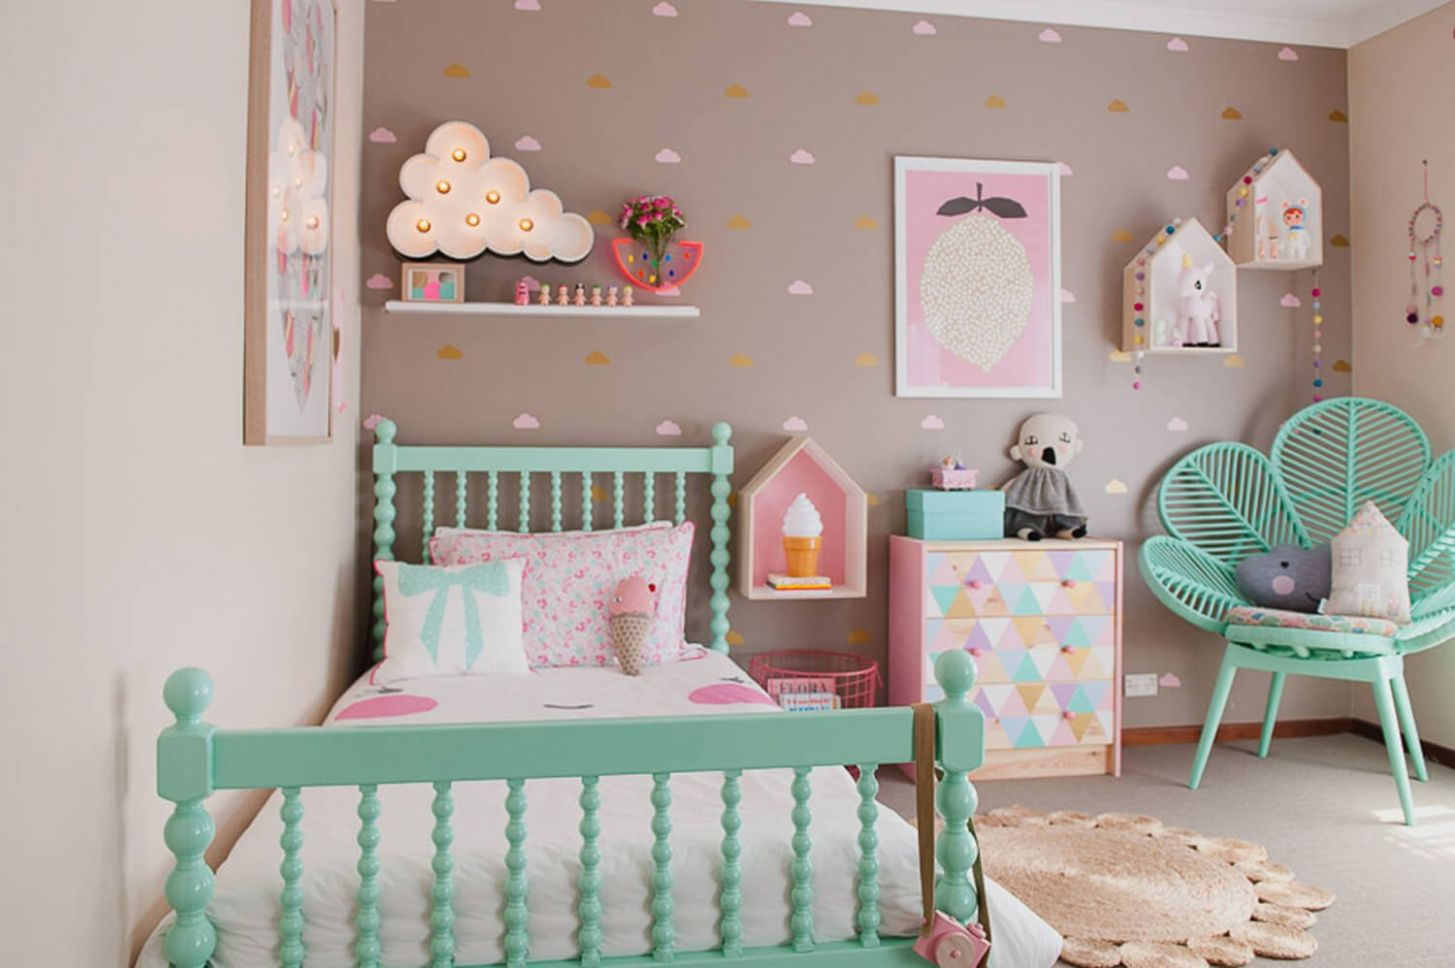 11 Kids Bedrooms Ideas That'll Let Them Explore Their Creativity